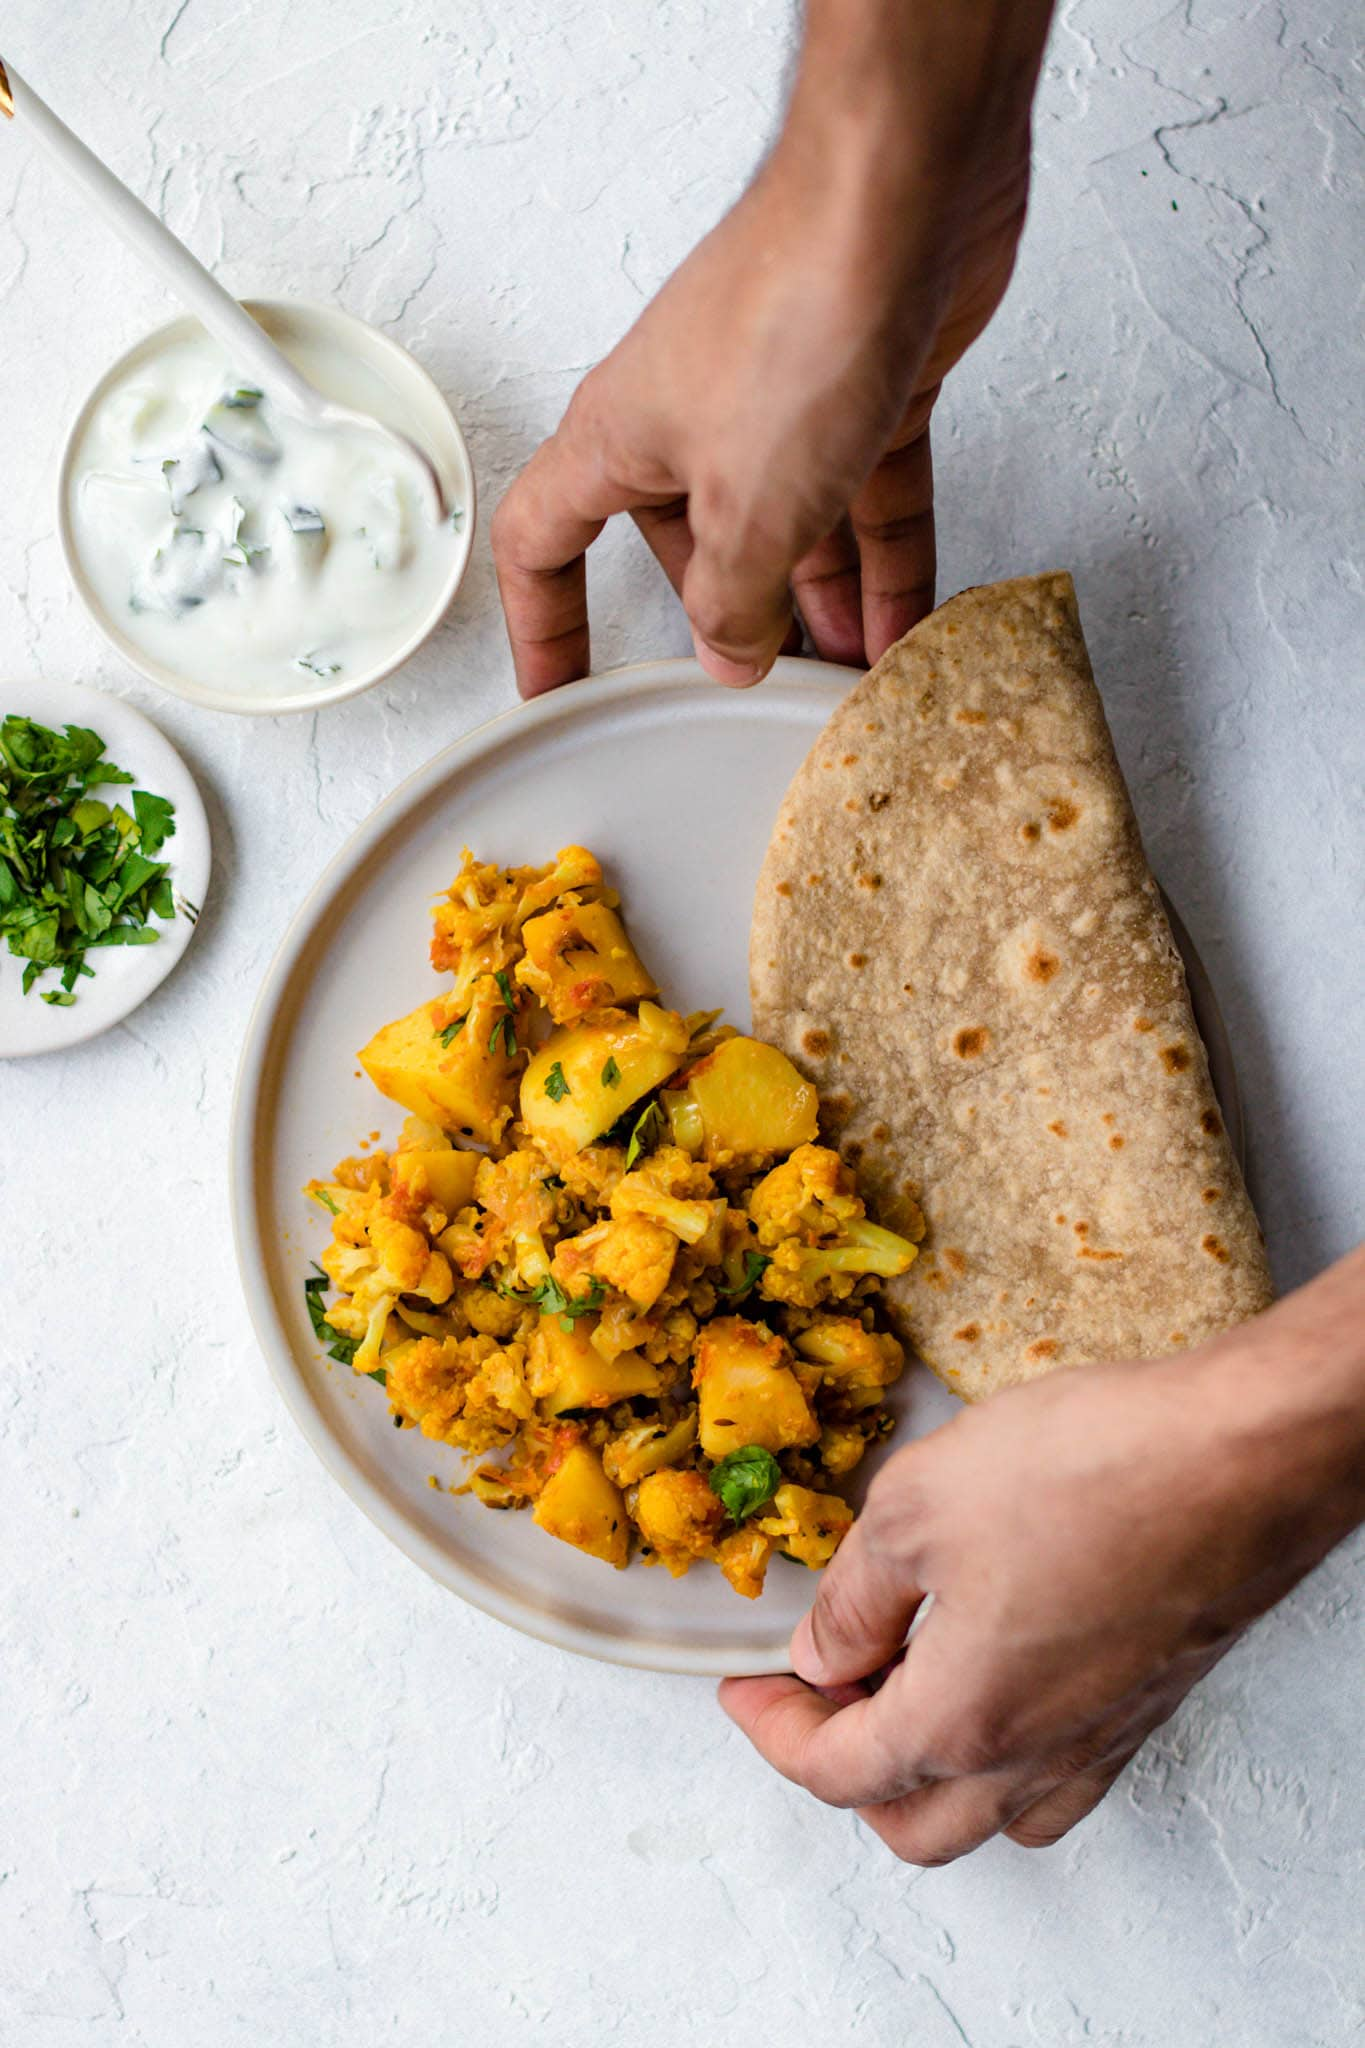 Holding a round plate with Aloo Gobi and a folded piece of roti.